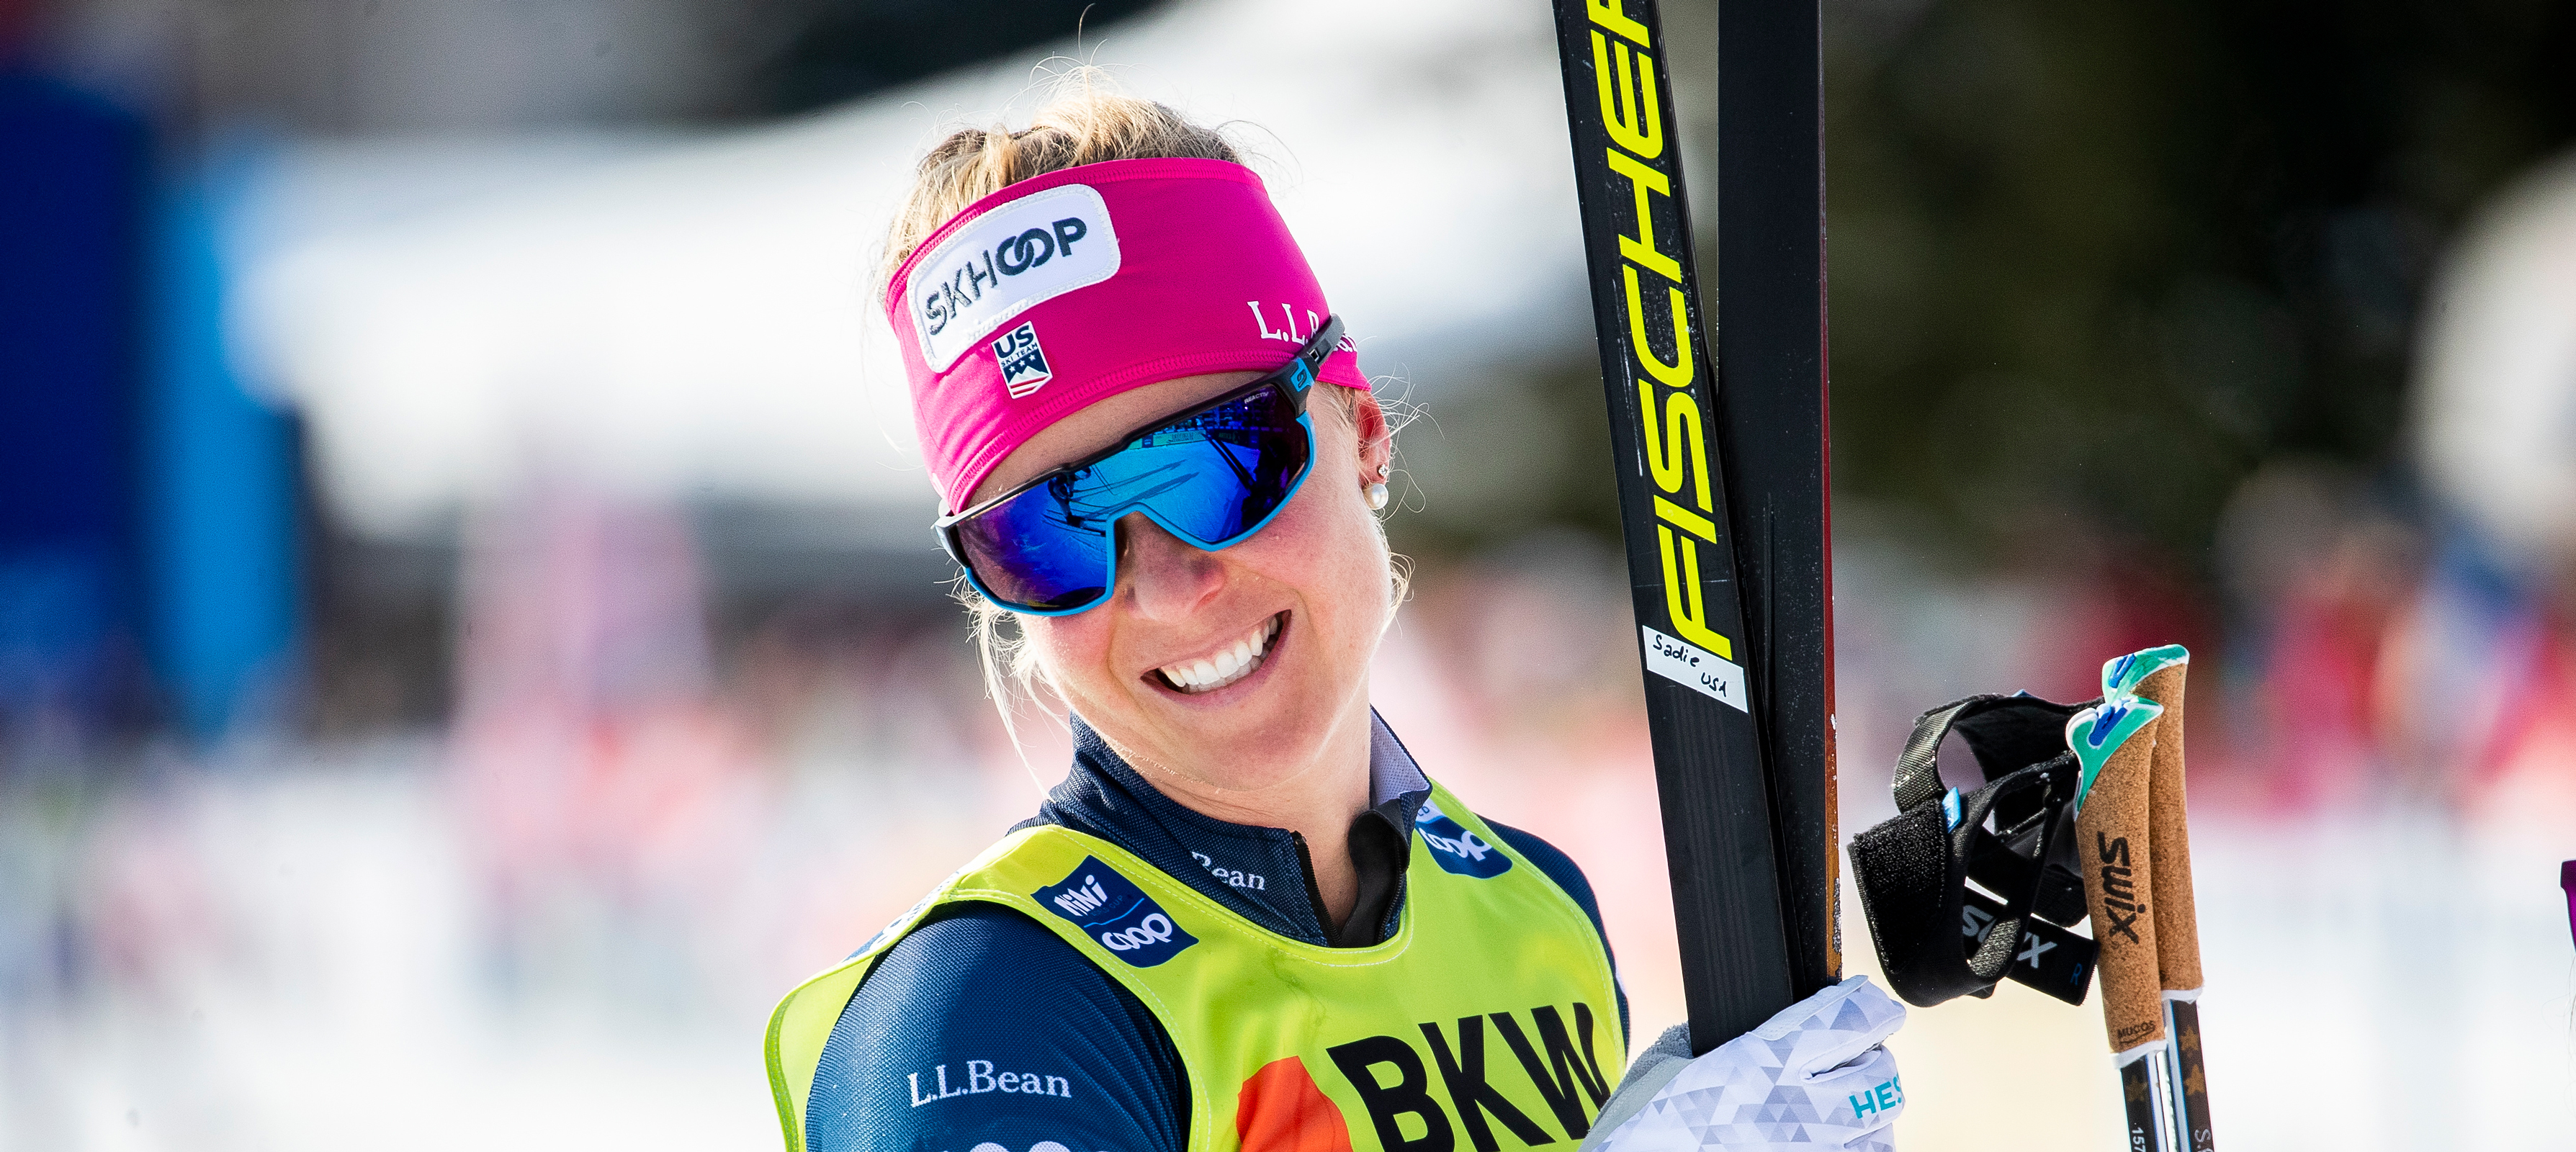 Sadie Maubet Bjornsen was the top U.S. finisher in Wednesday's fourth stage of the Tour de Ski.